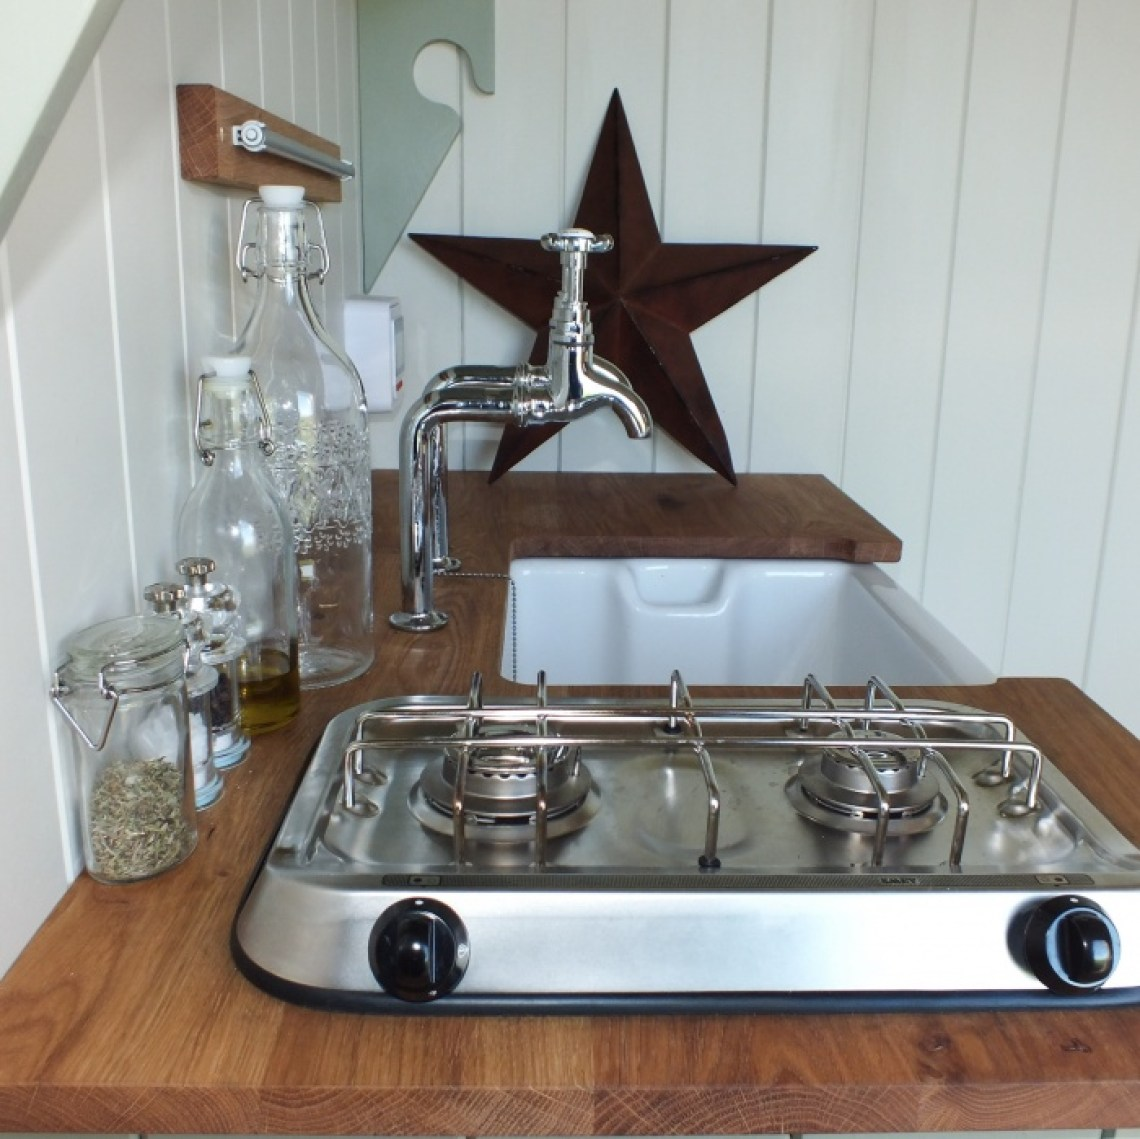 A small kitchen unit in The Pleasant Pheasant with belfast sink and 2 ring gas hob with a metal star decoration in background